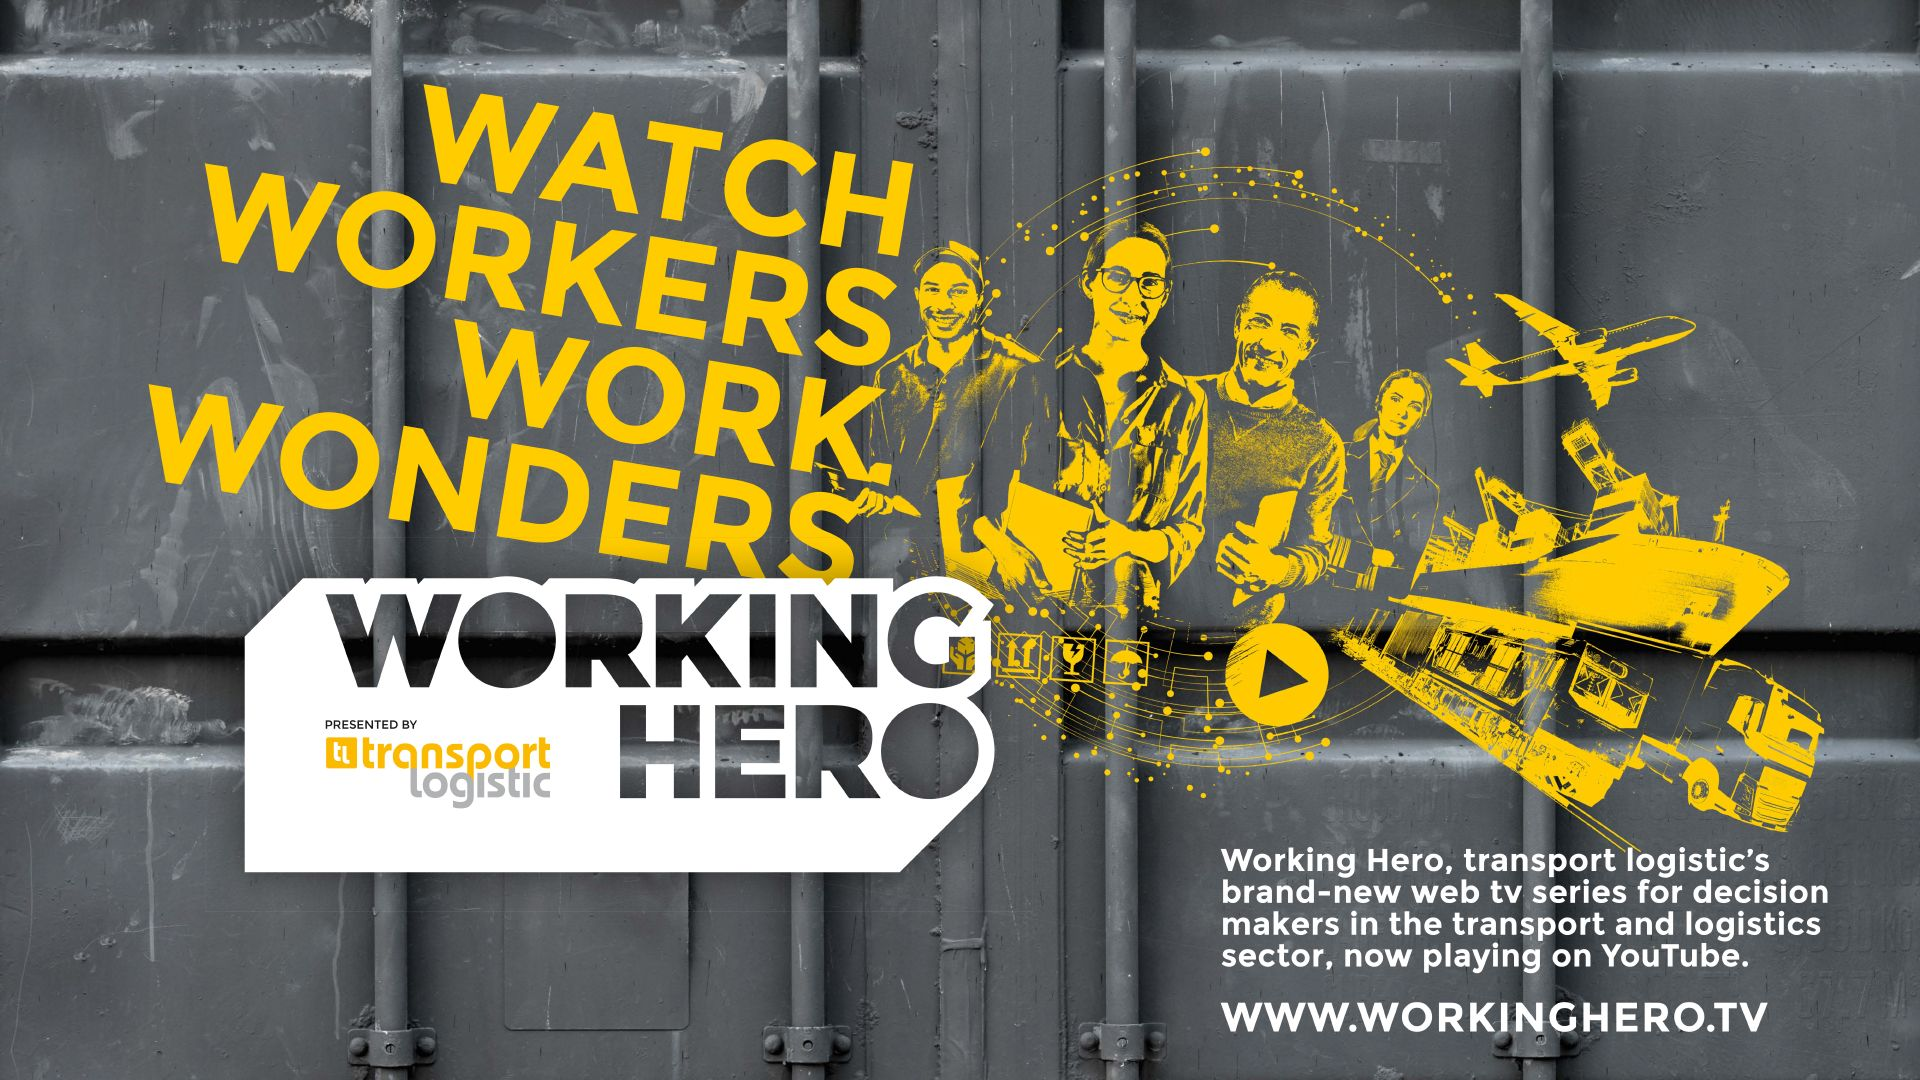 Working Hero